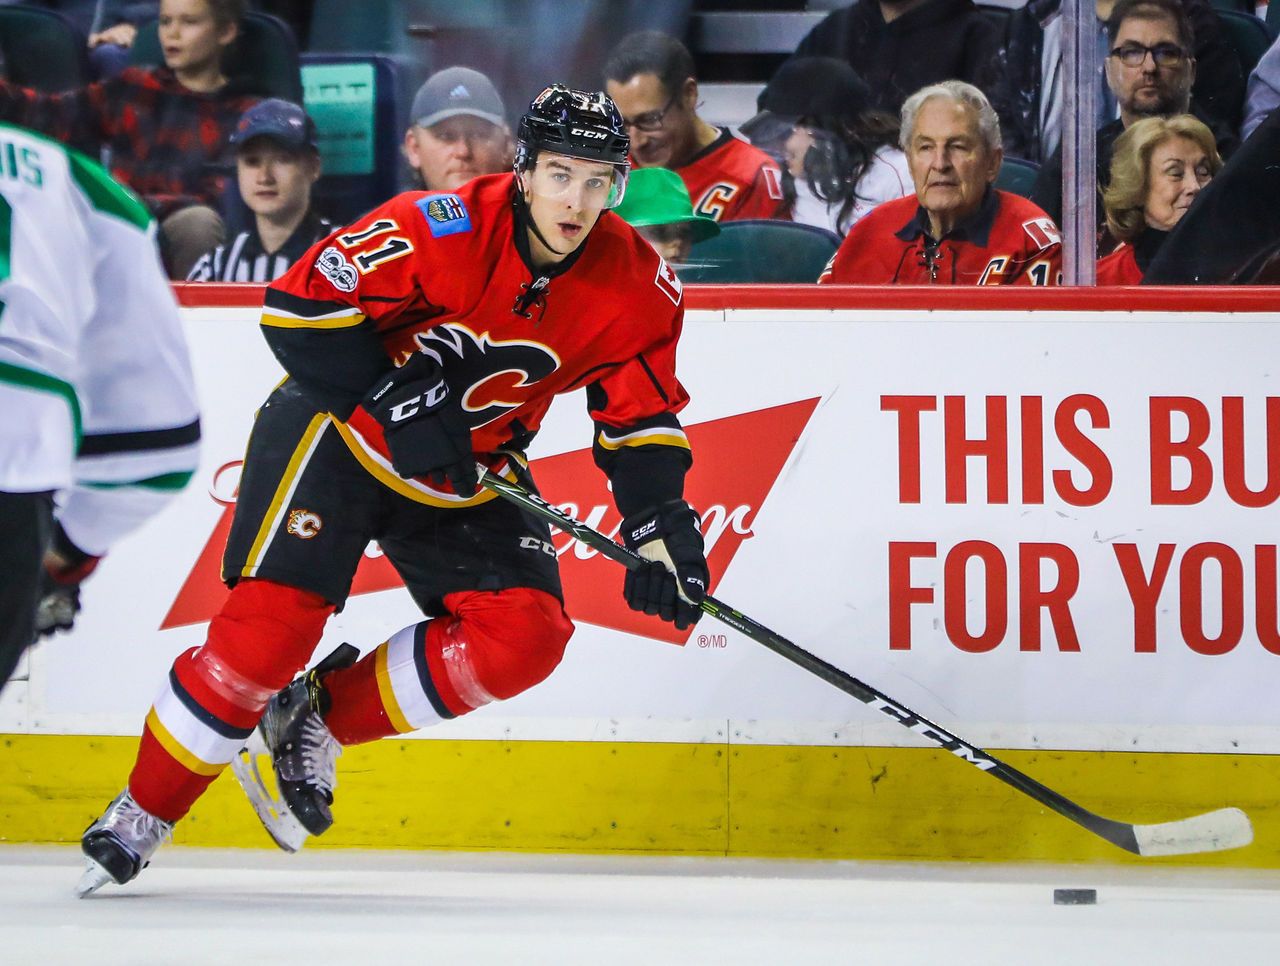 Cropped 2017 03 18t015634z 1014298772 nocid rtrmadp 3 nhl dallas stars at calgary flames